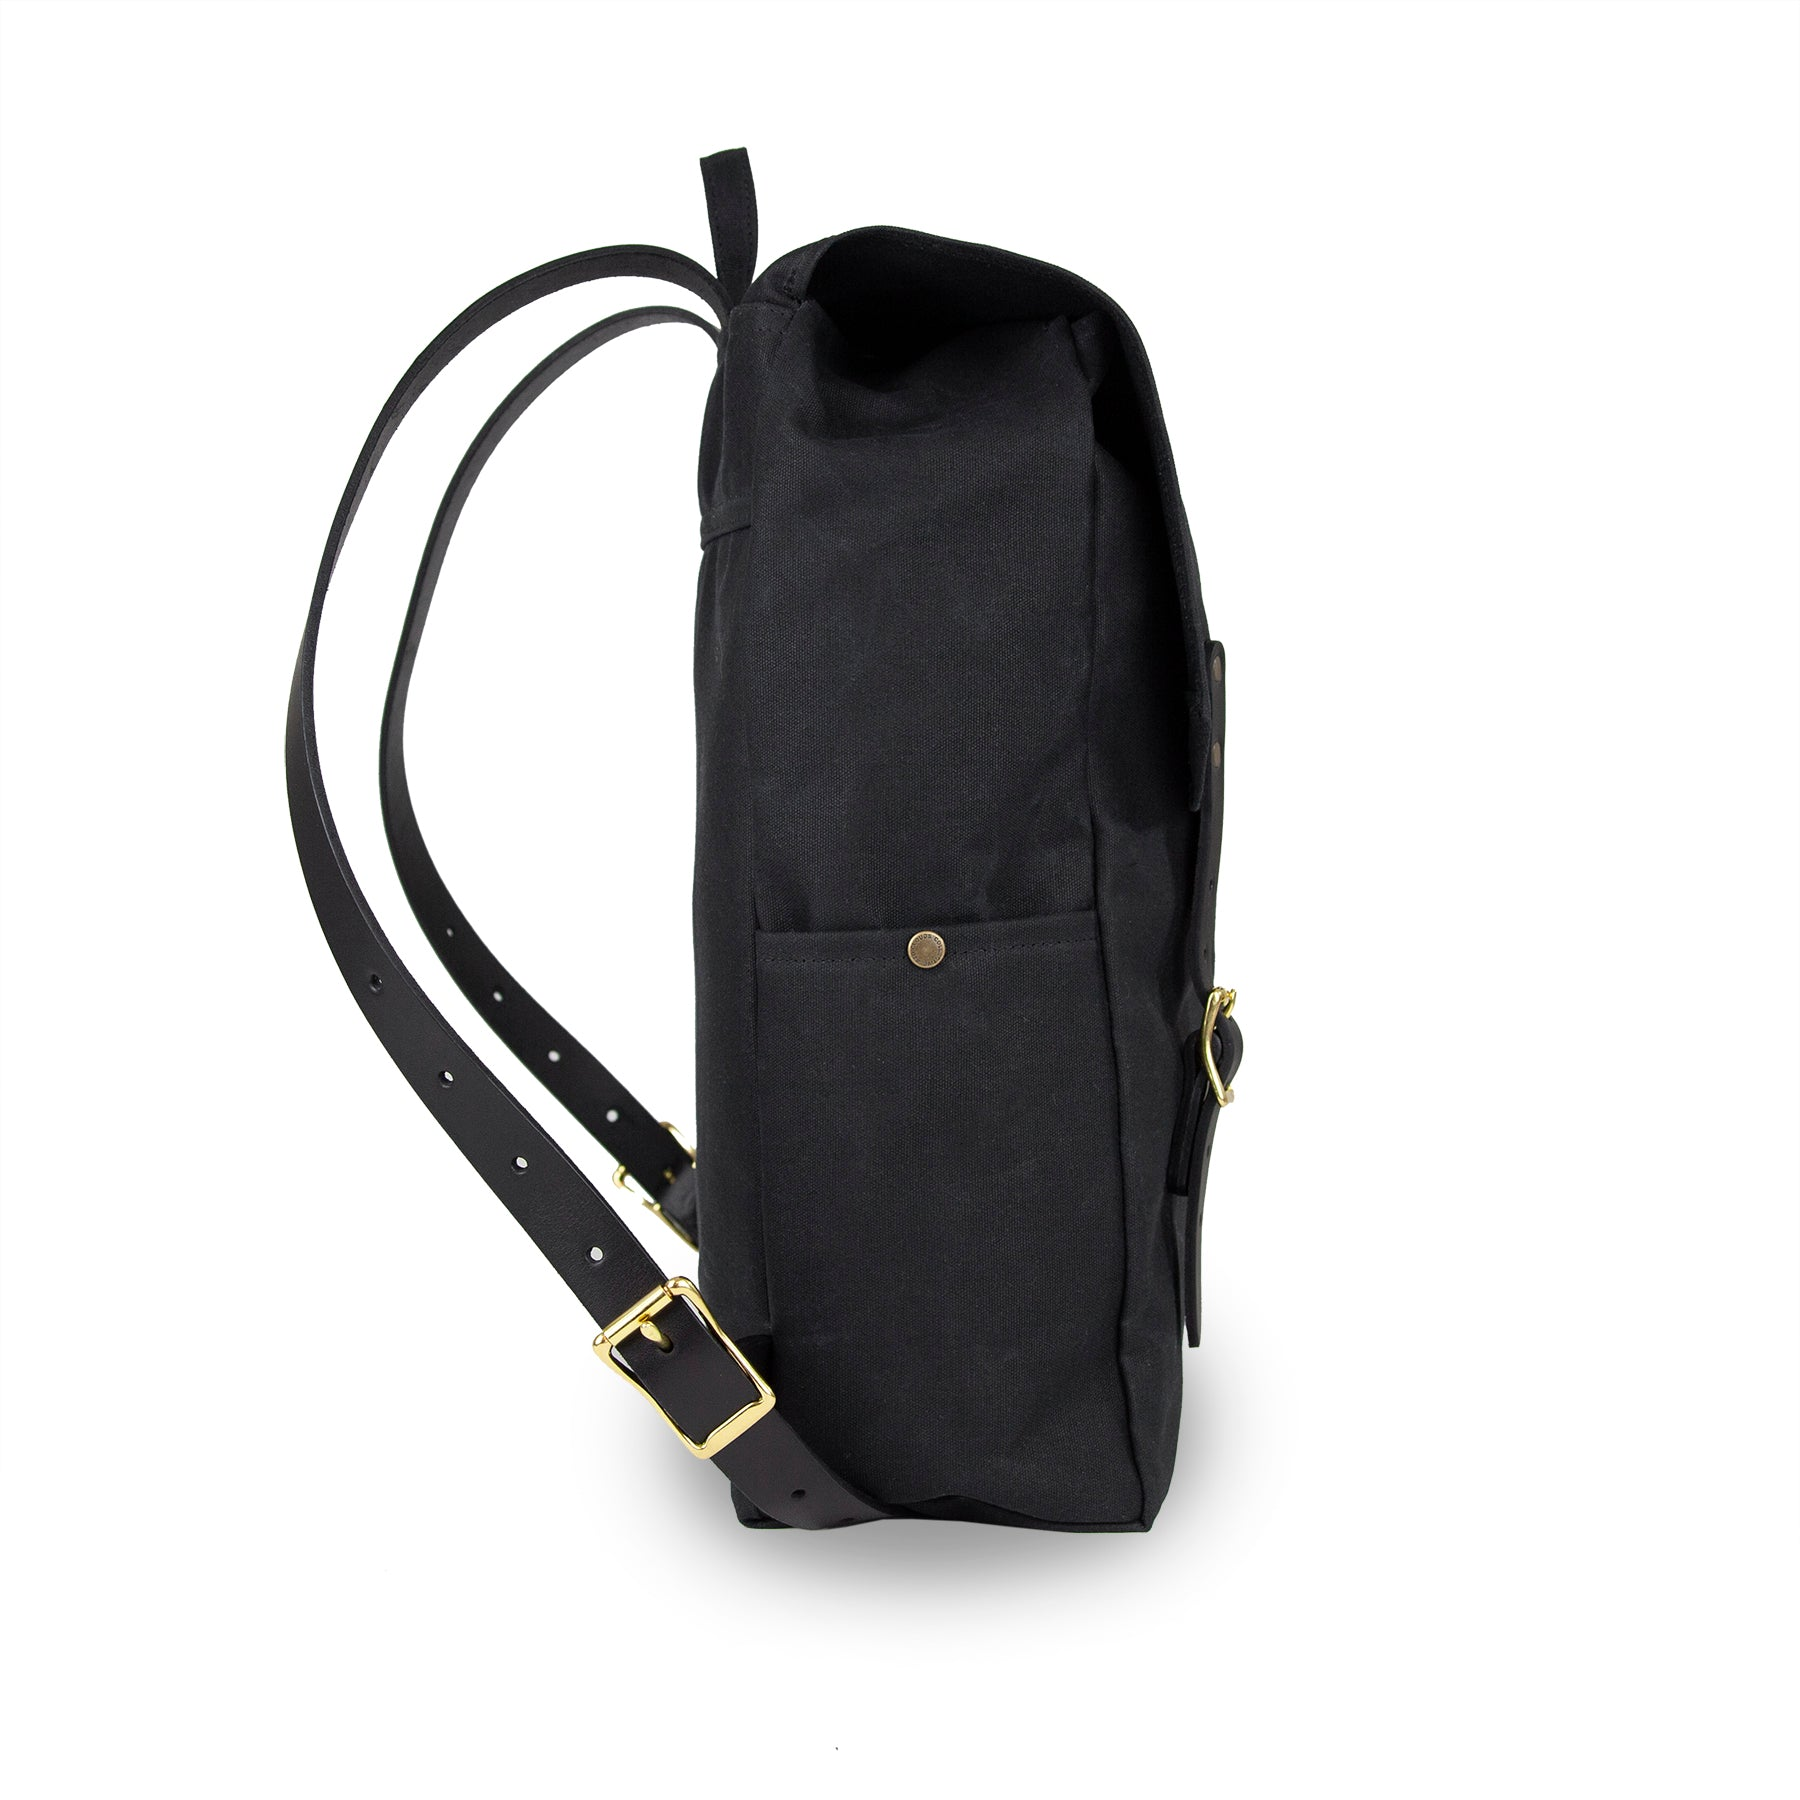 Day Tripper Backpack - Black with Black Leather